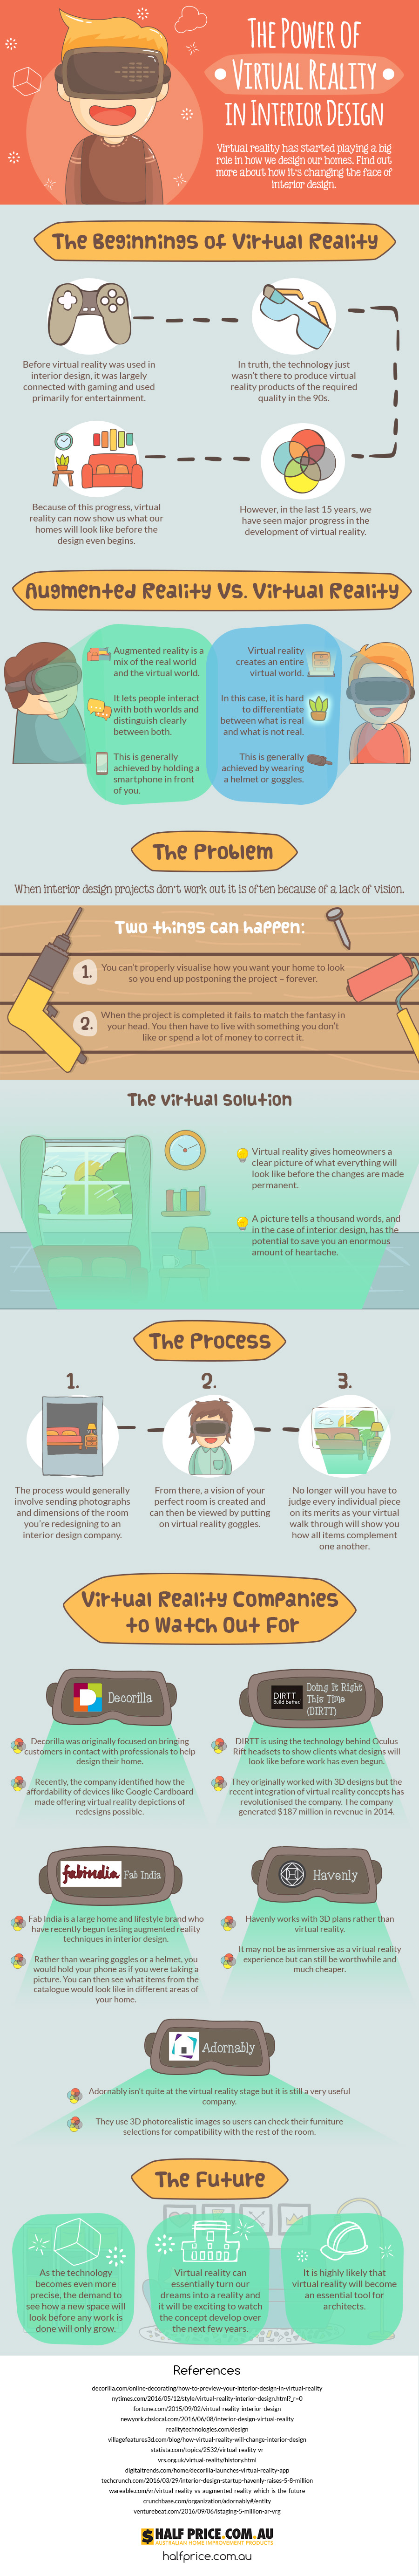 The-Power-of-Virtual-Reality-in-Interior-Design -Infographic